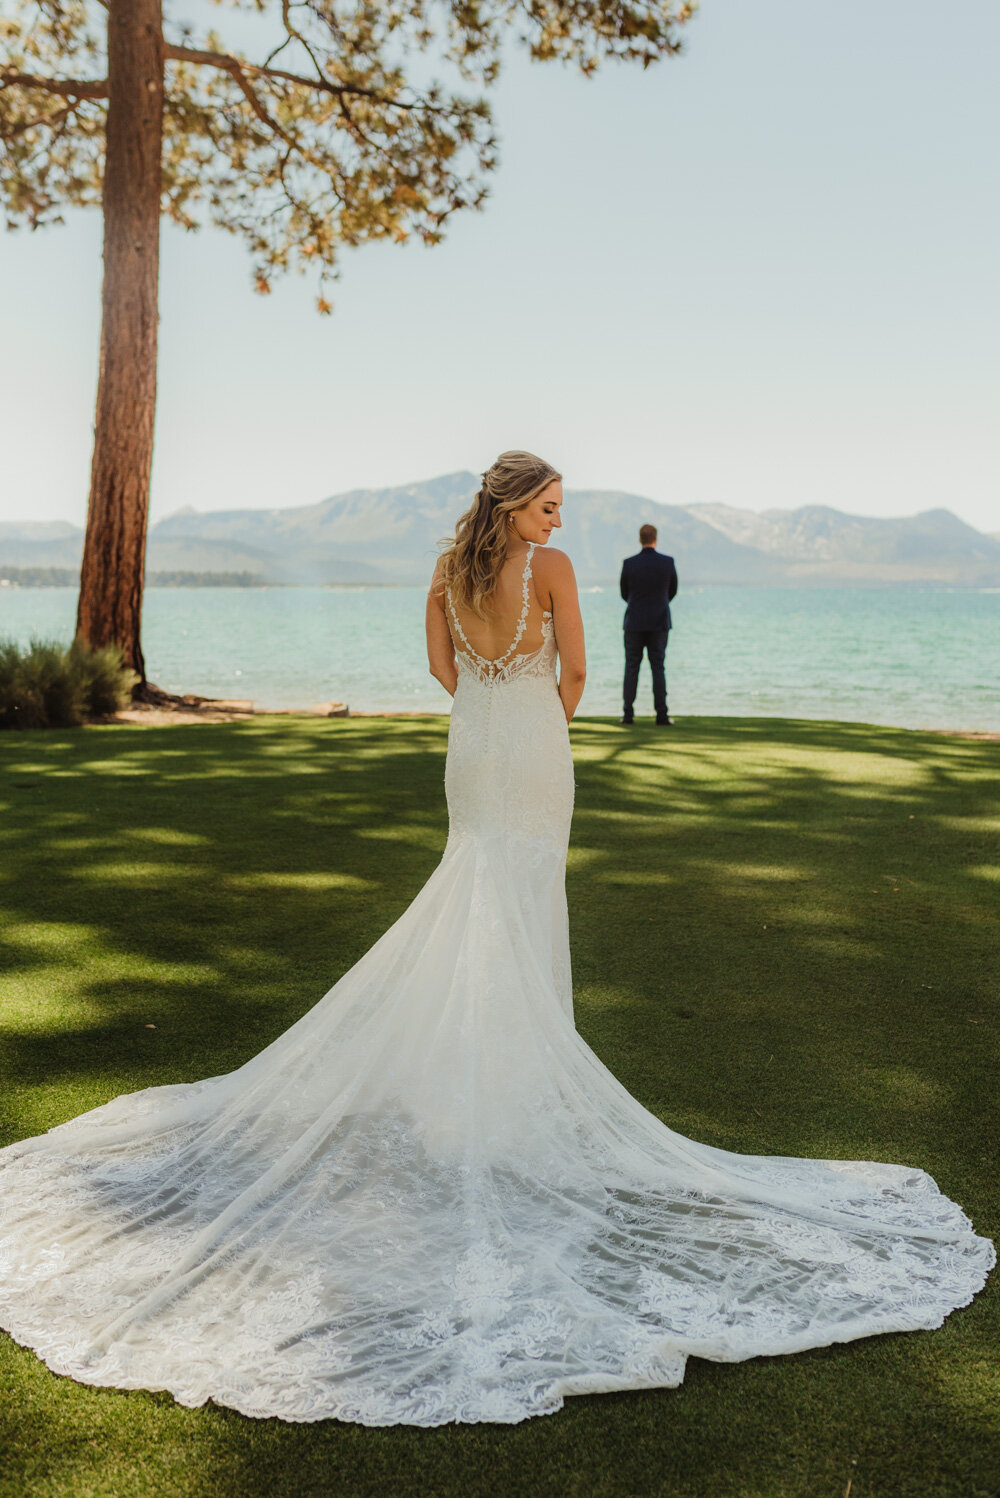 Edgewood Tahoe Wedding, photo of bride with a long train